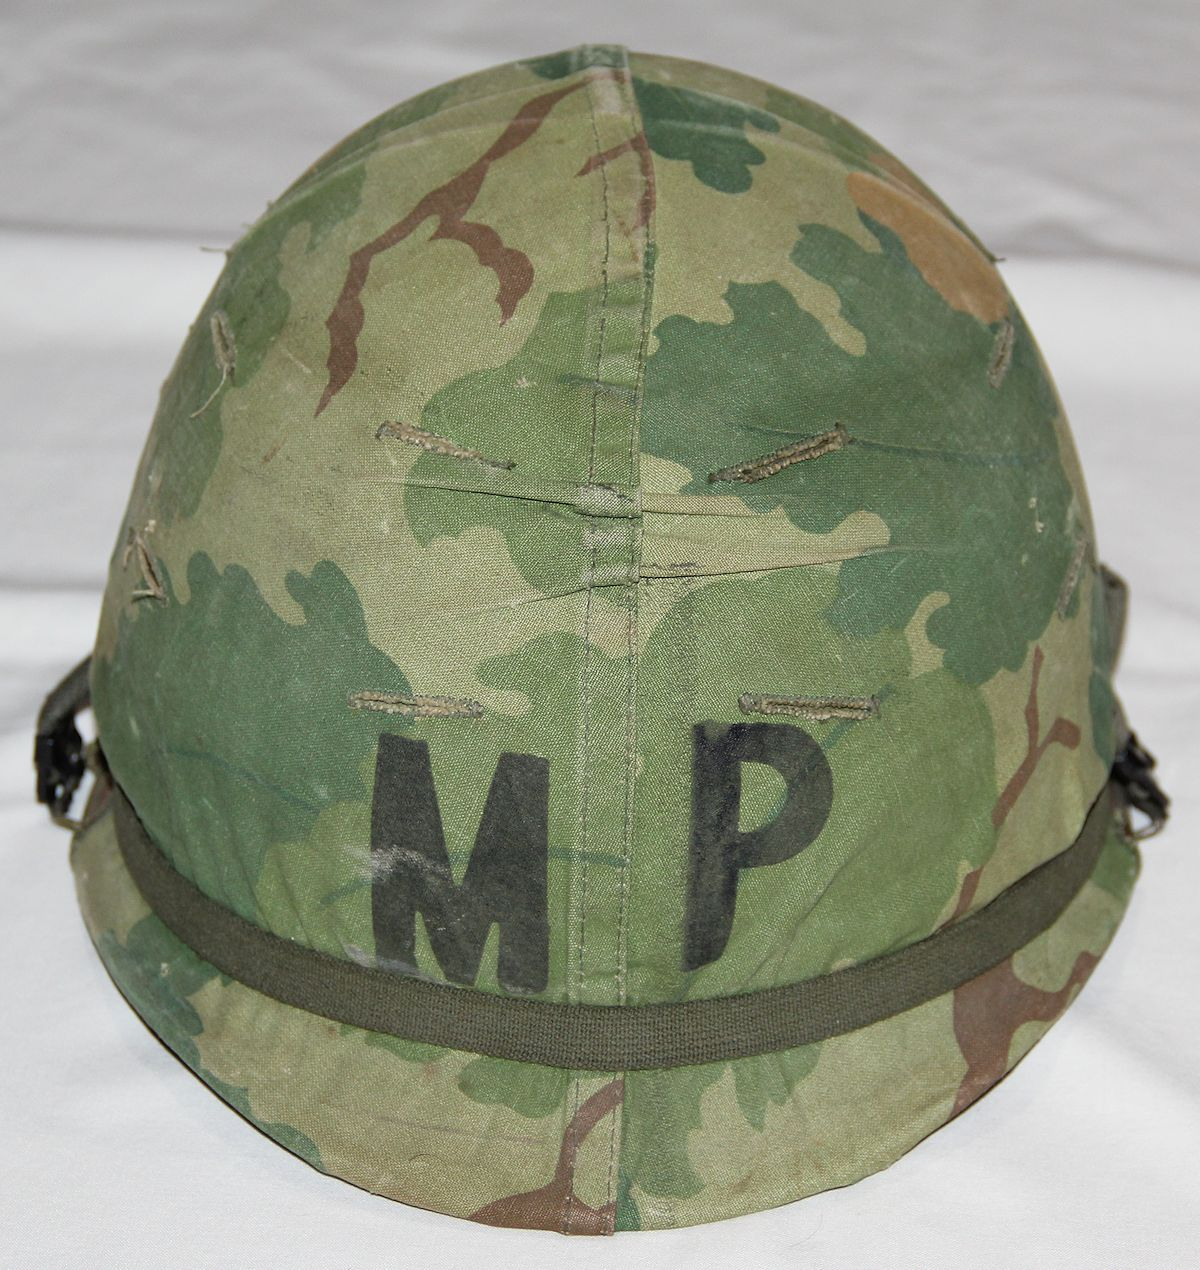 T016. LATE VIETNAM MILITARY POLICE M1 HELMET WITH COMPLETE